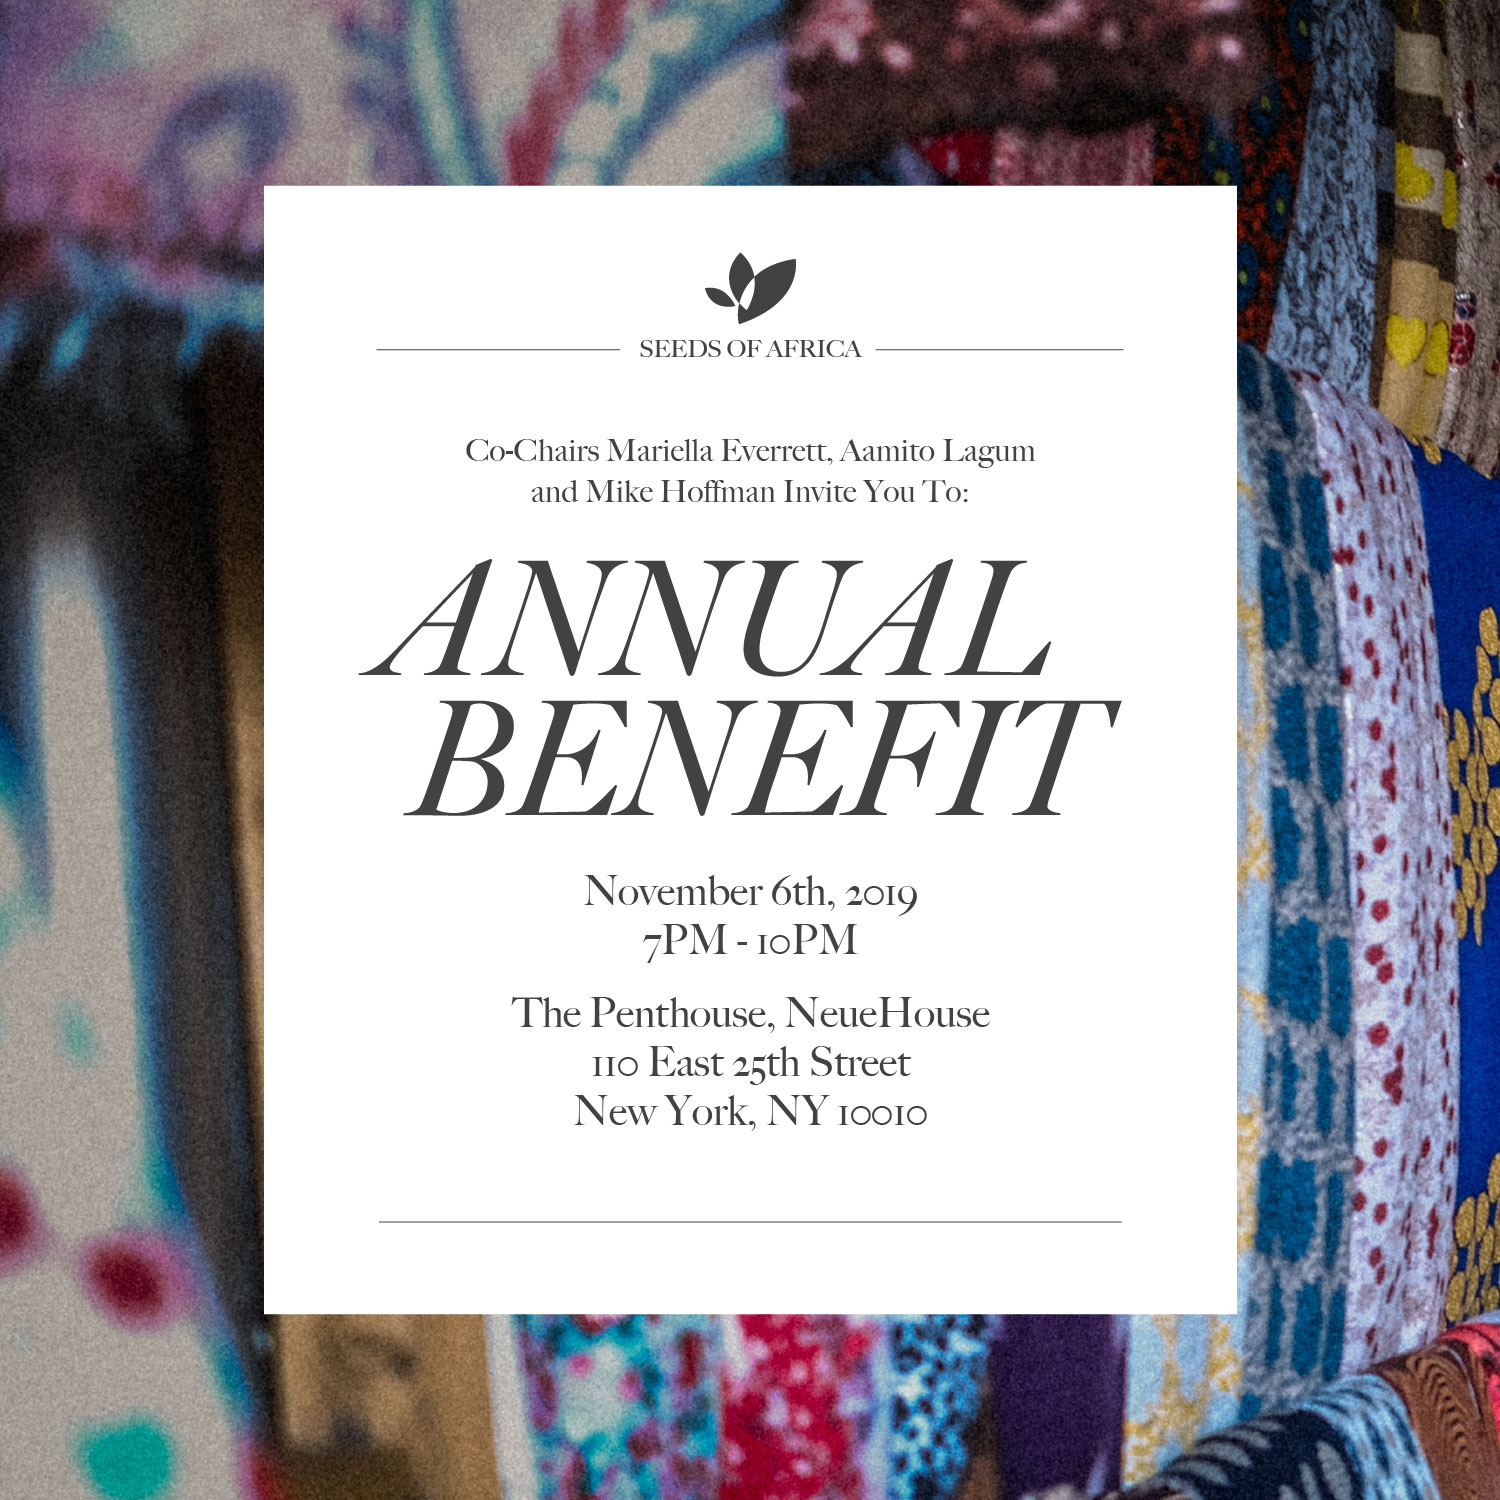 You're Invited: Seeds of Africa 2019 Annual Benefit